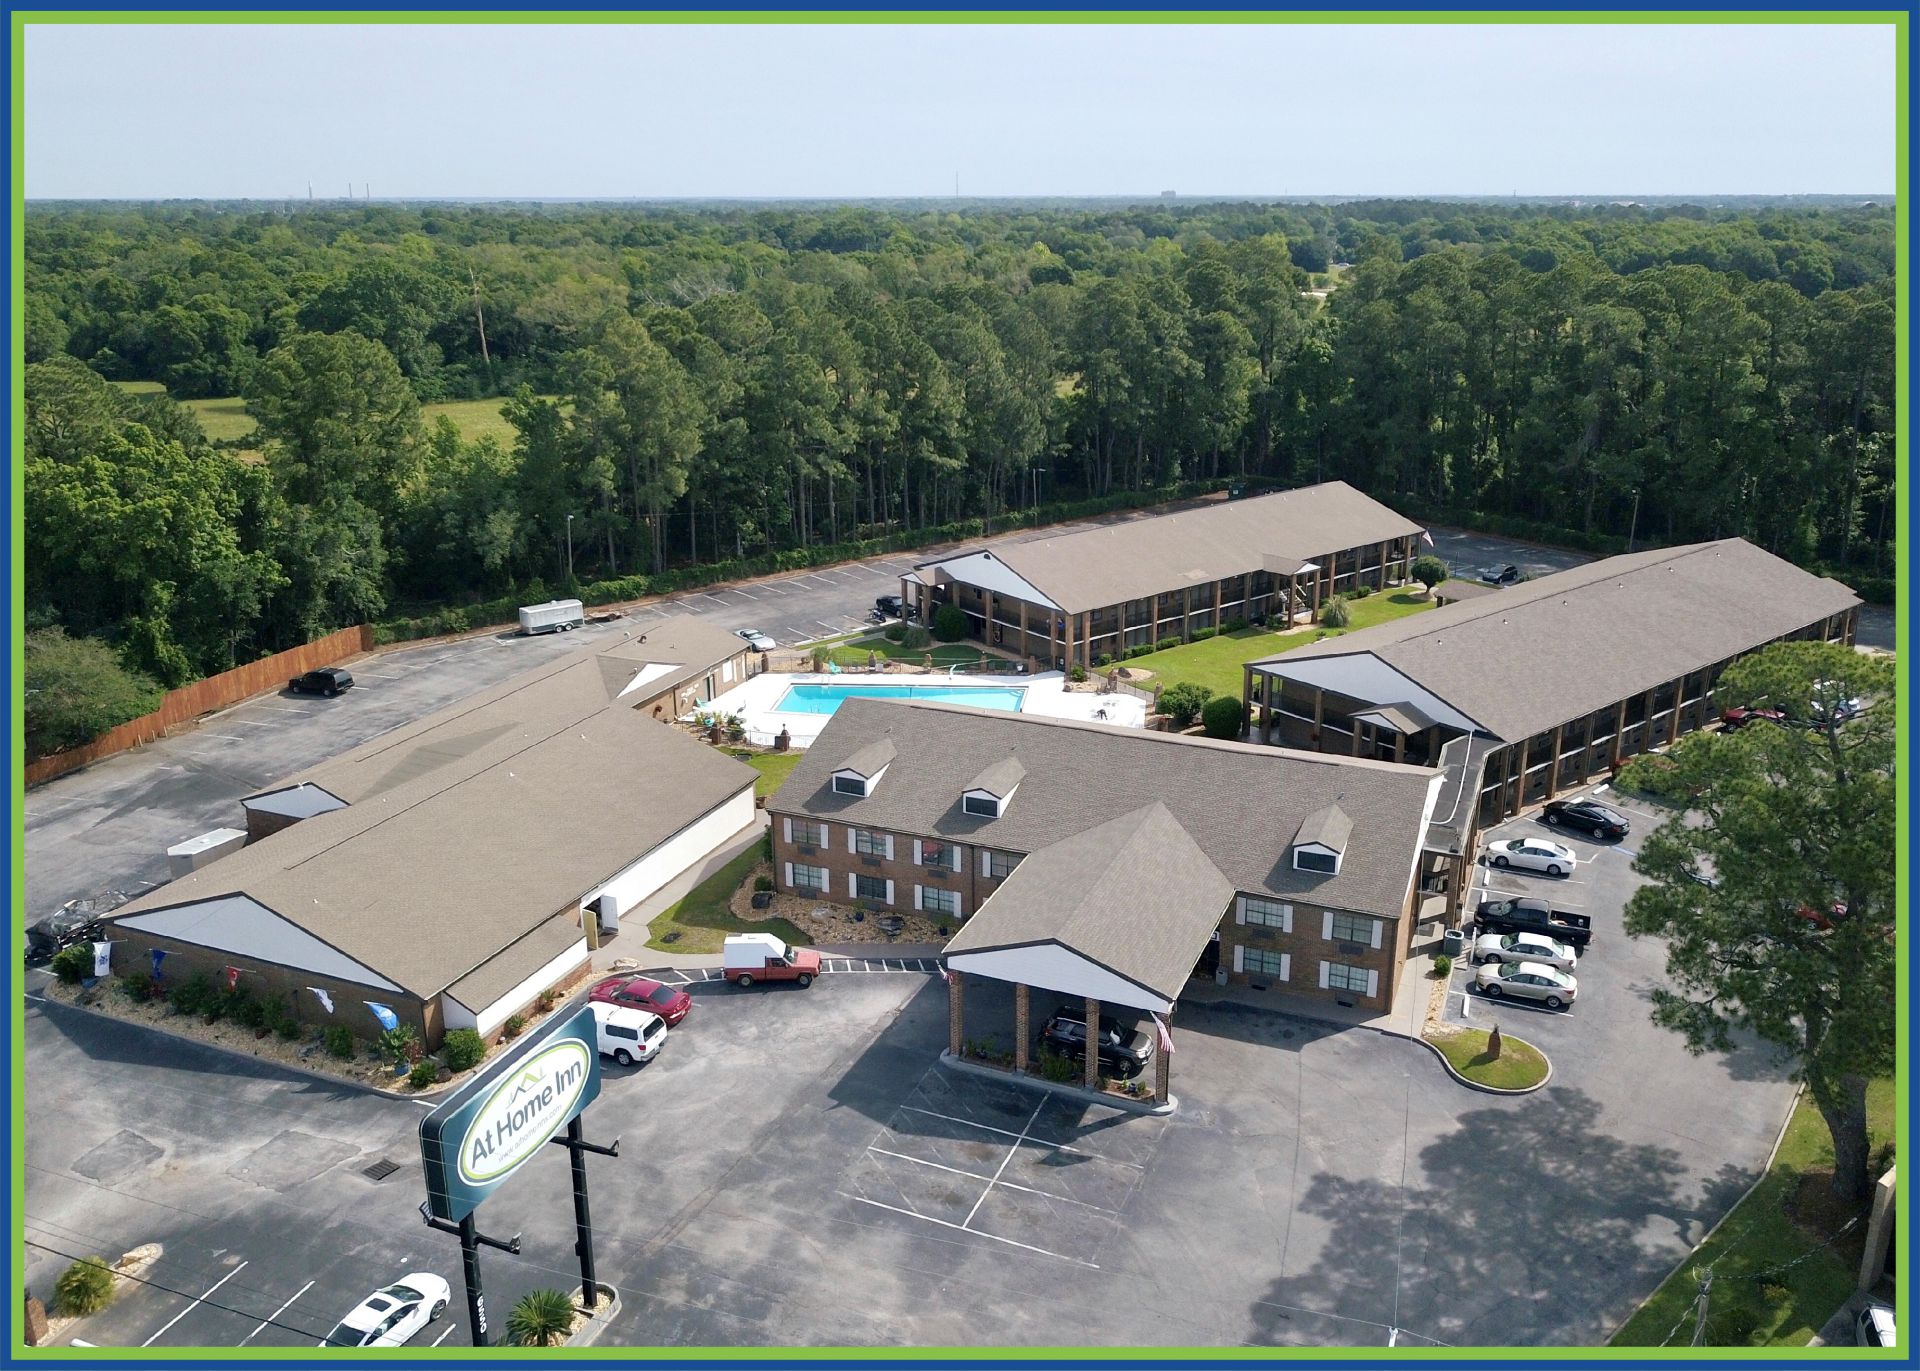 At Home Inn Pensacola Florida Aerial View of the Property